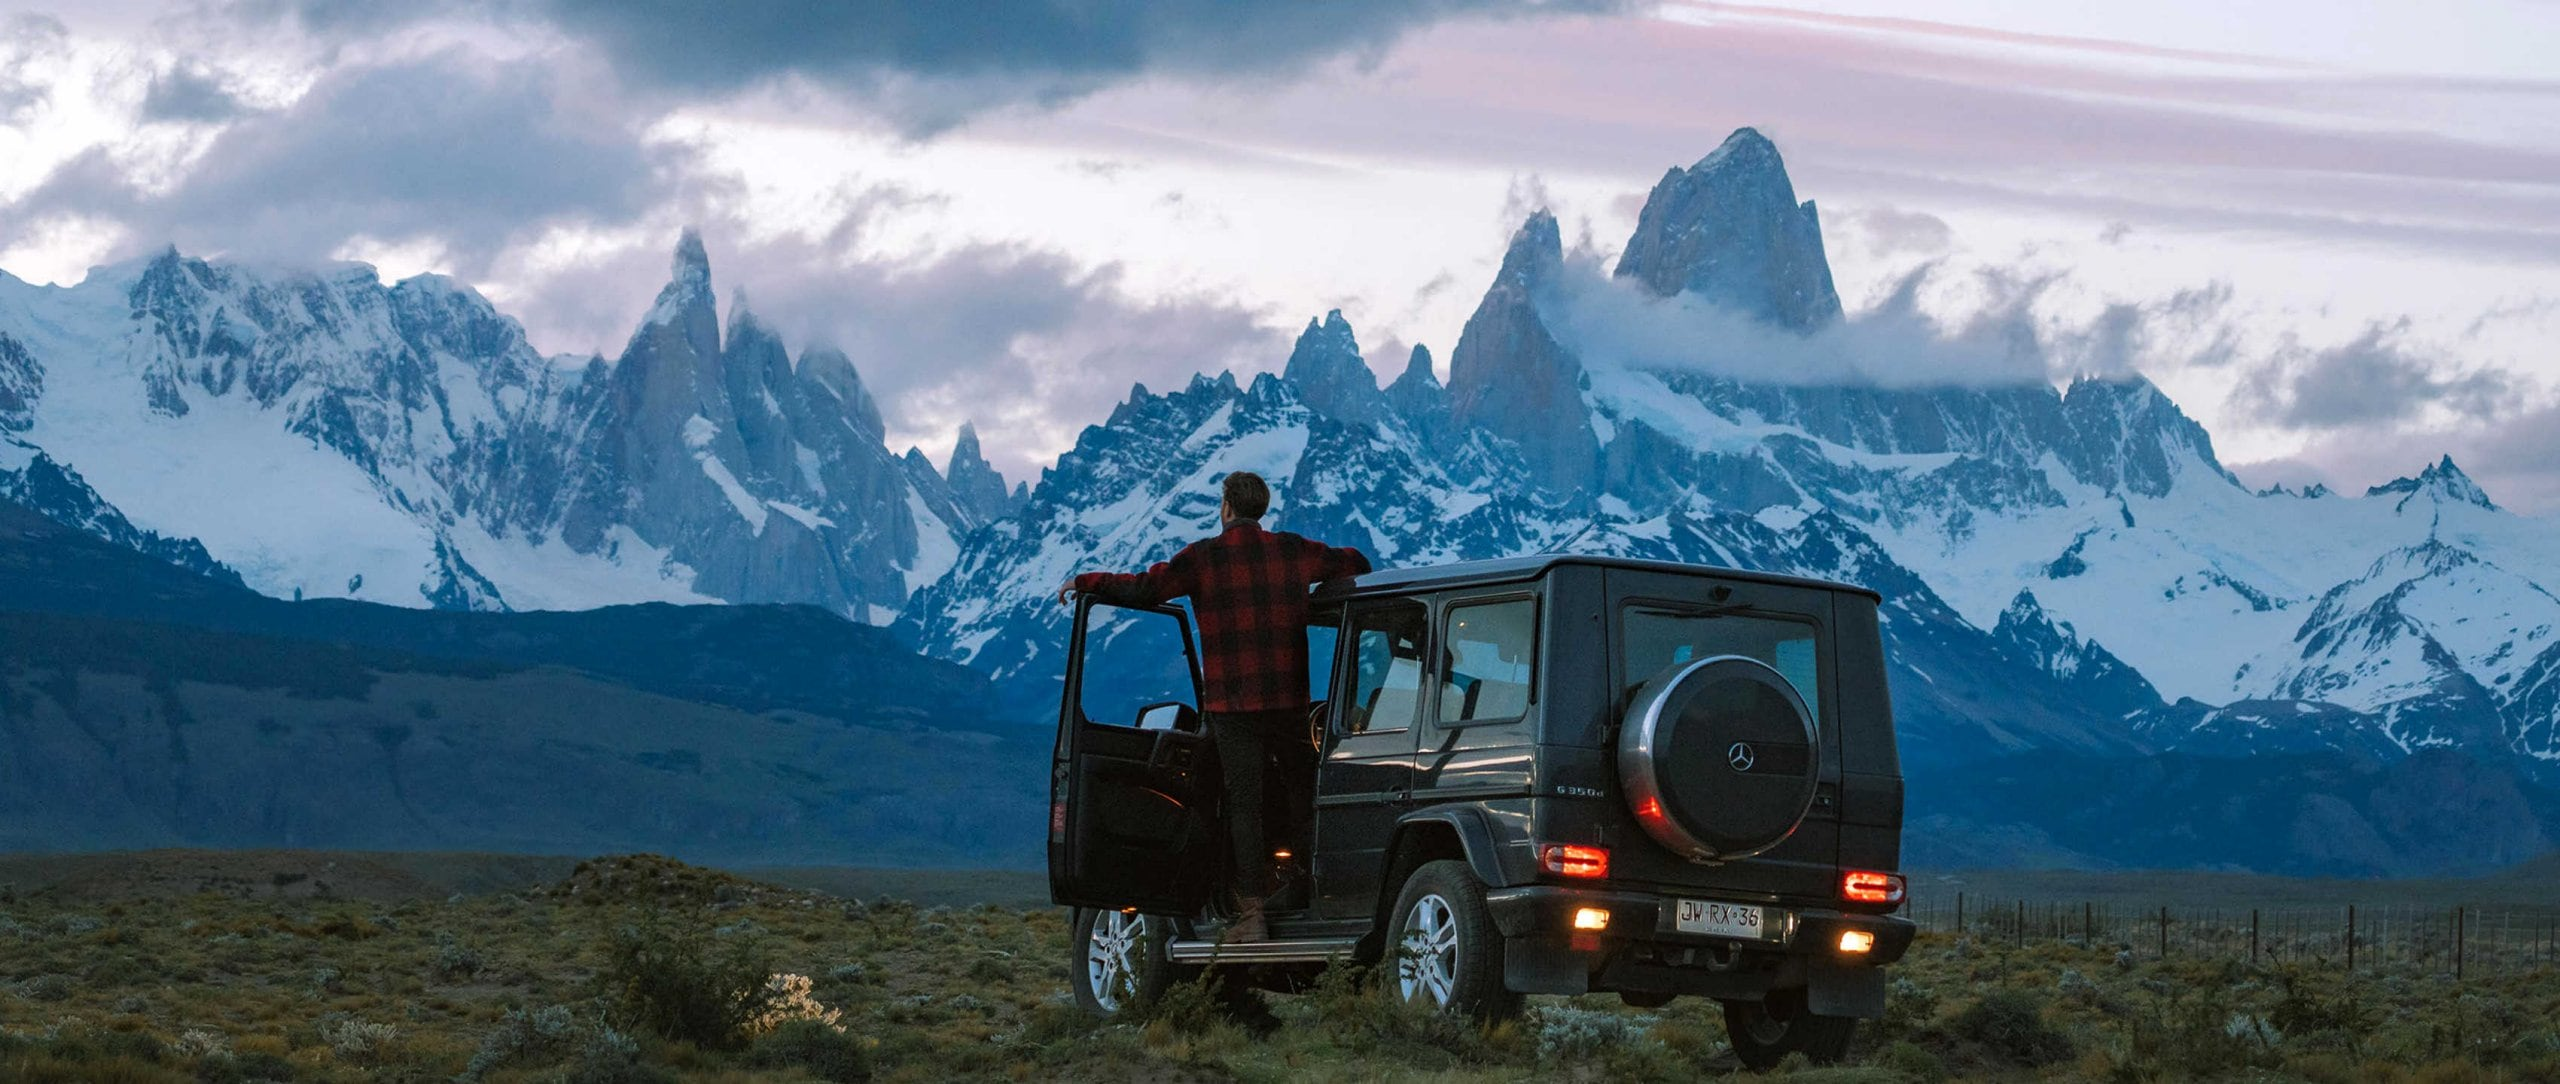 He says, she says: Mercedes-Benz G-Class (W 463) – In a G-Class, Emilie Ristevski and Jason Charles Hill explore Patagonia's beautiful landscapes.